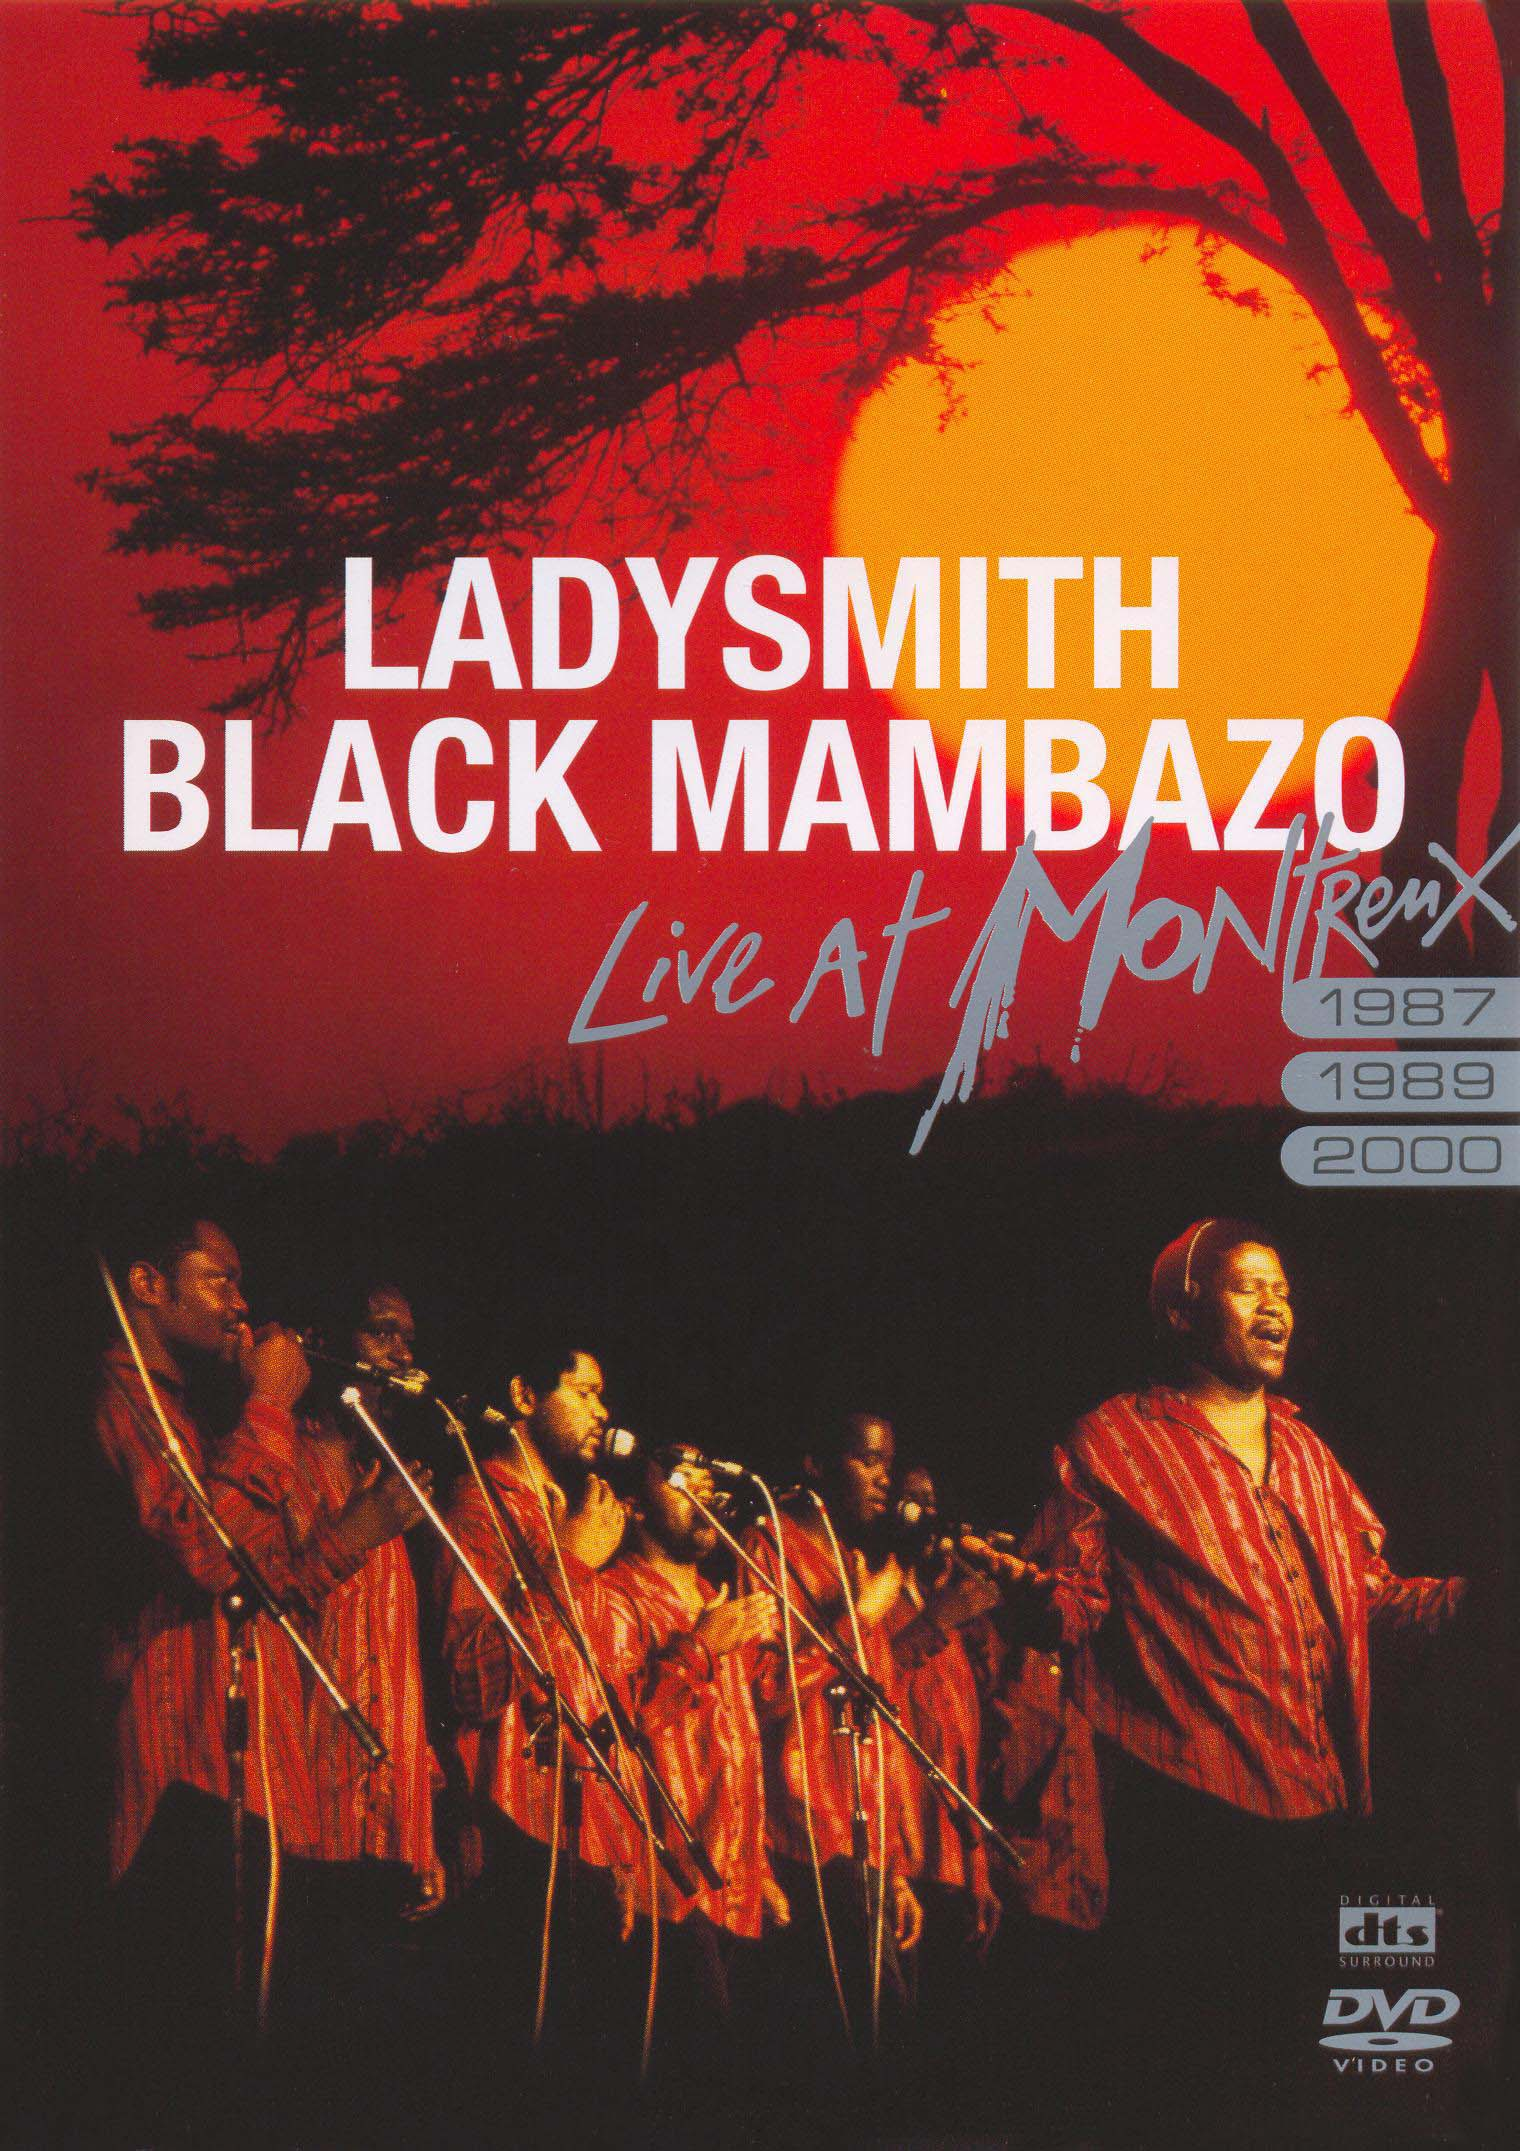 Ladysmith Black Mambazo: Live at Montreux, 1987, 1989, 2000